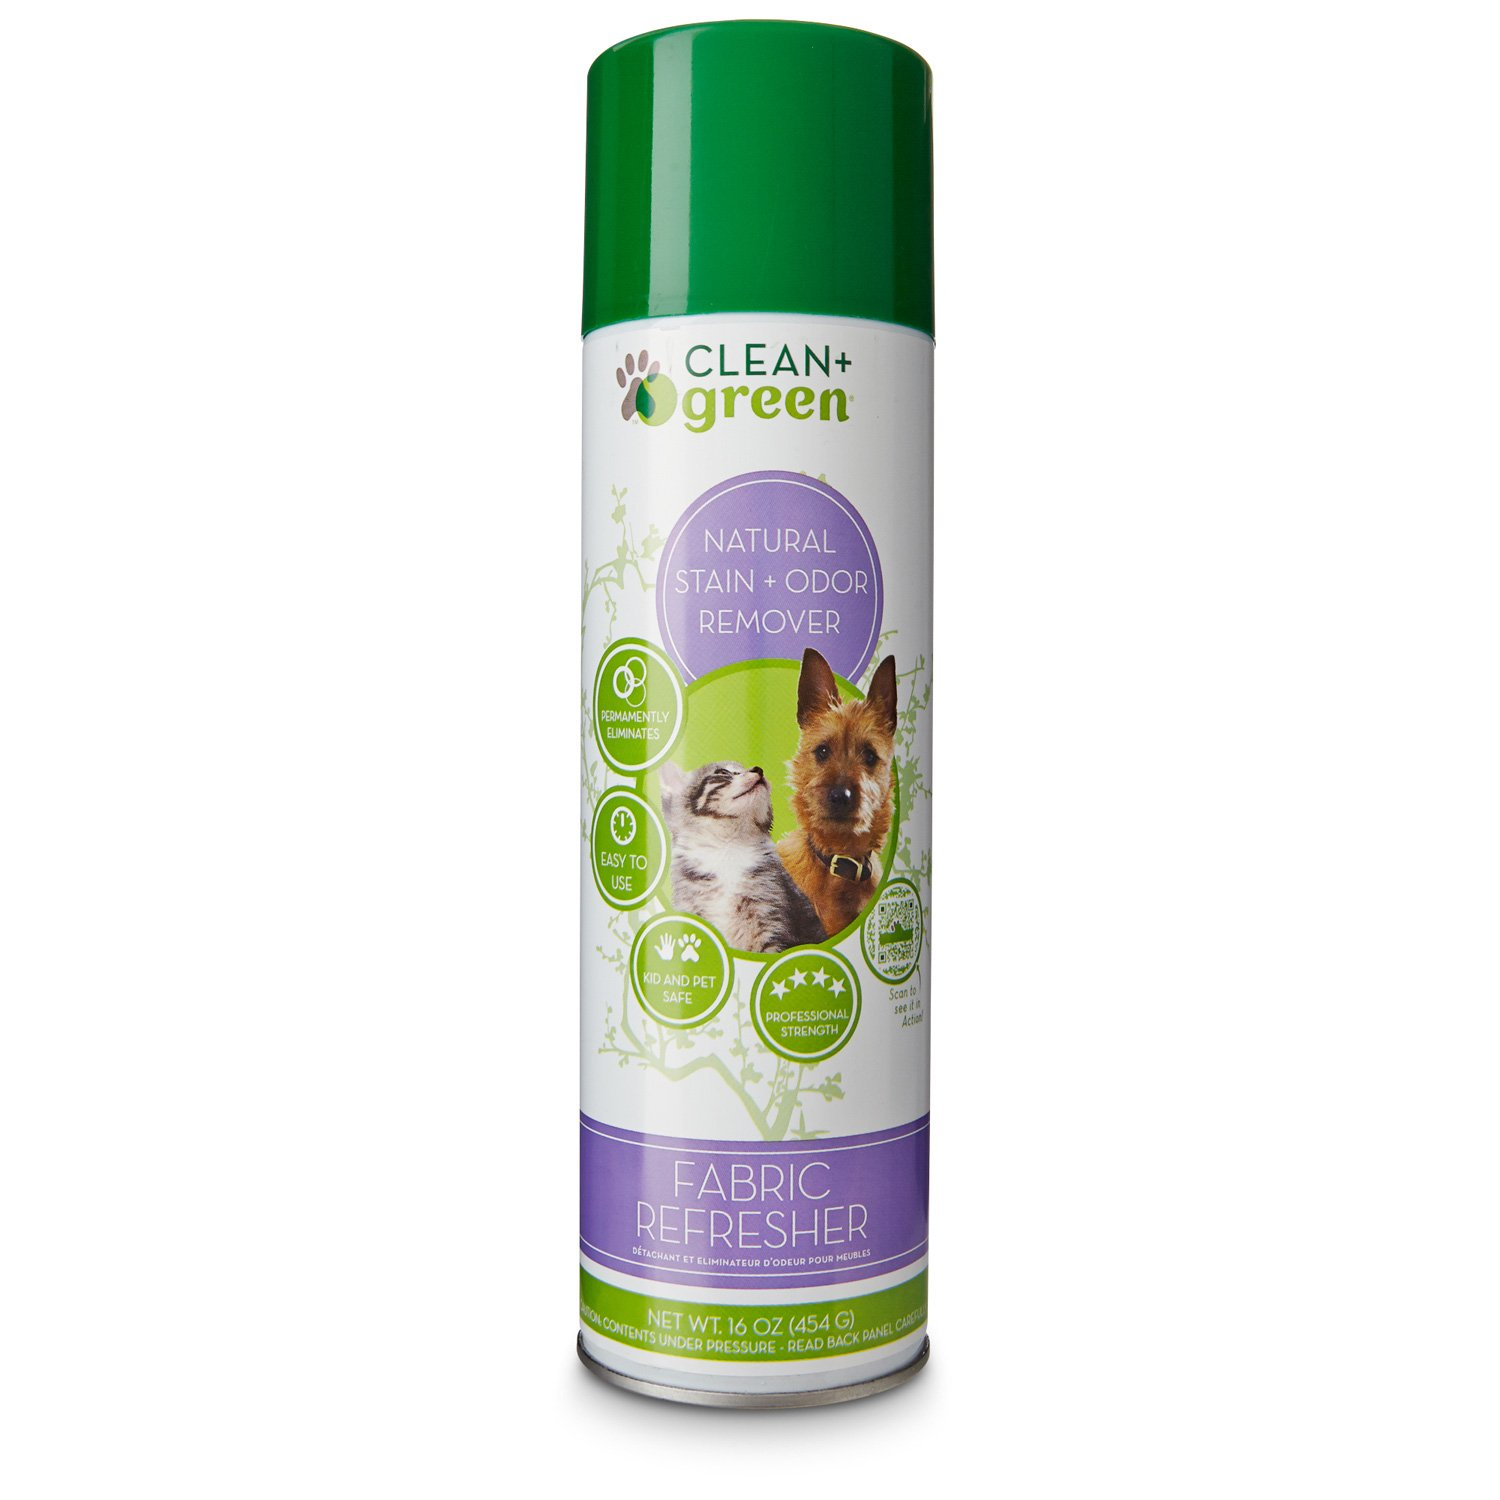 Clean + Green Fabric Refresher